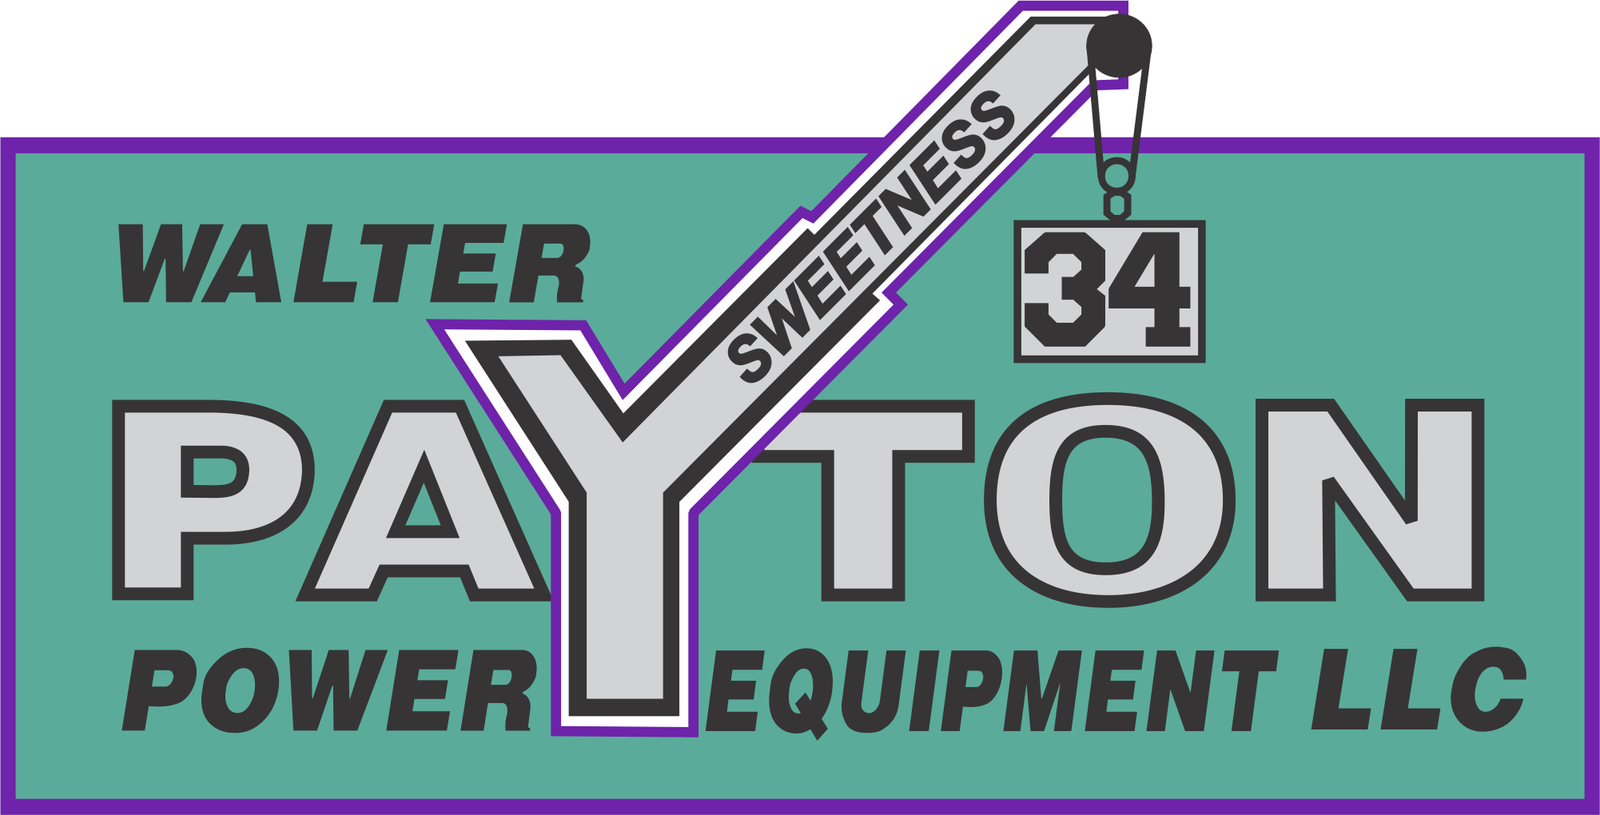 Walter Payton Power Equipment